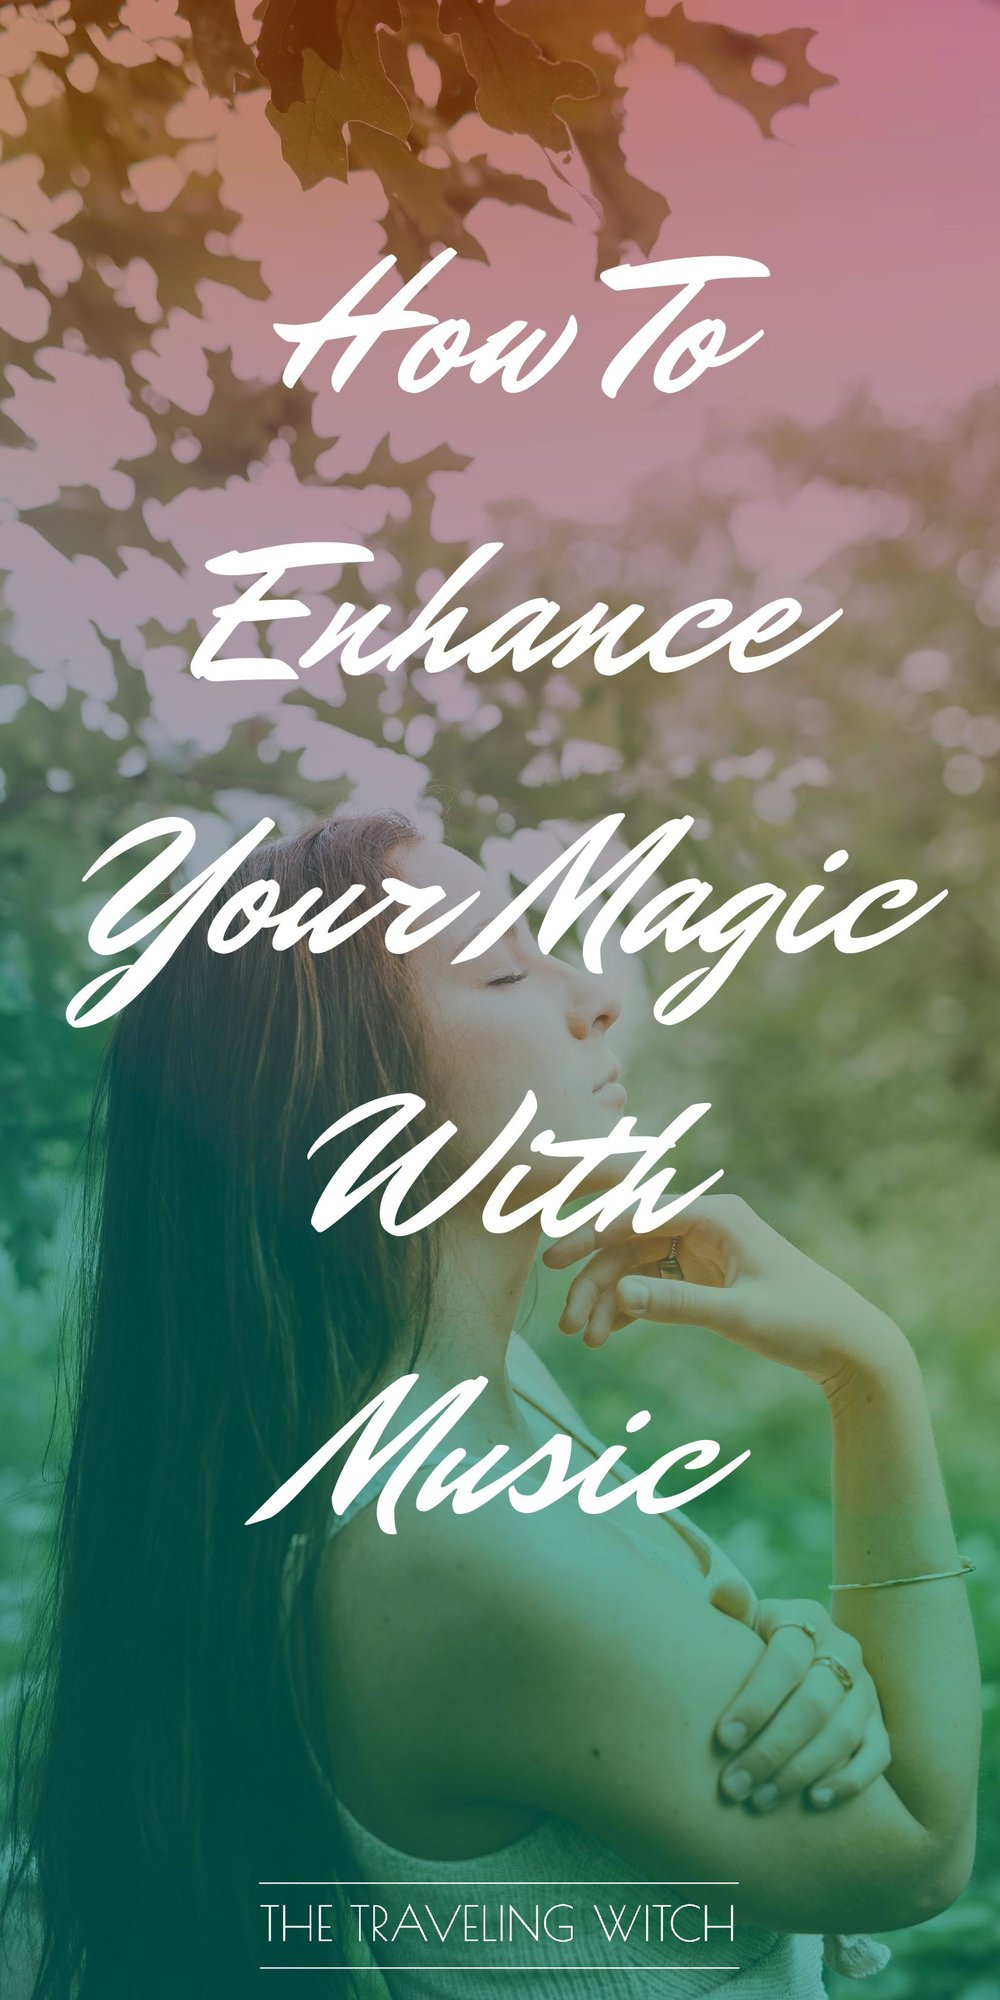 How To Enhance Your Magic With Music // Witchcraft // The Traveling Witch